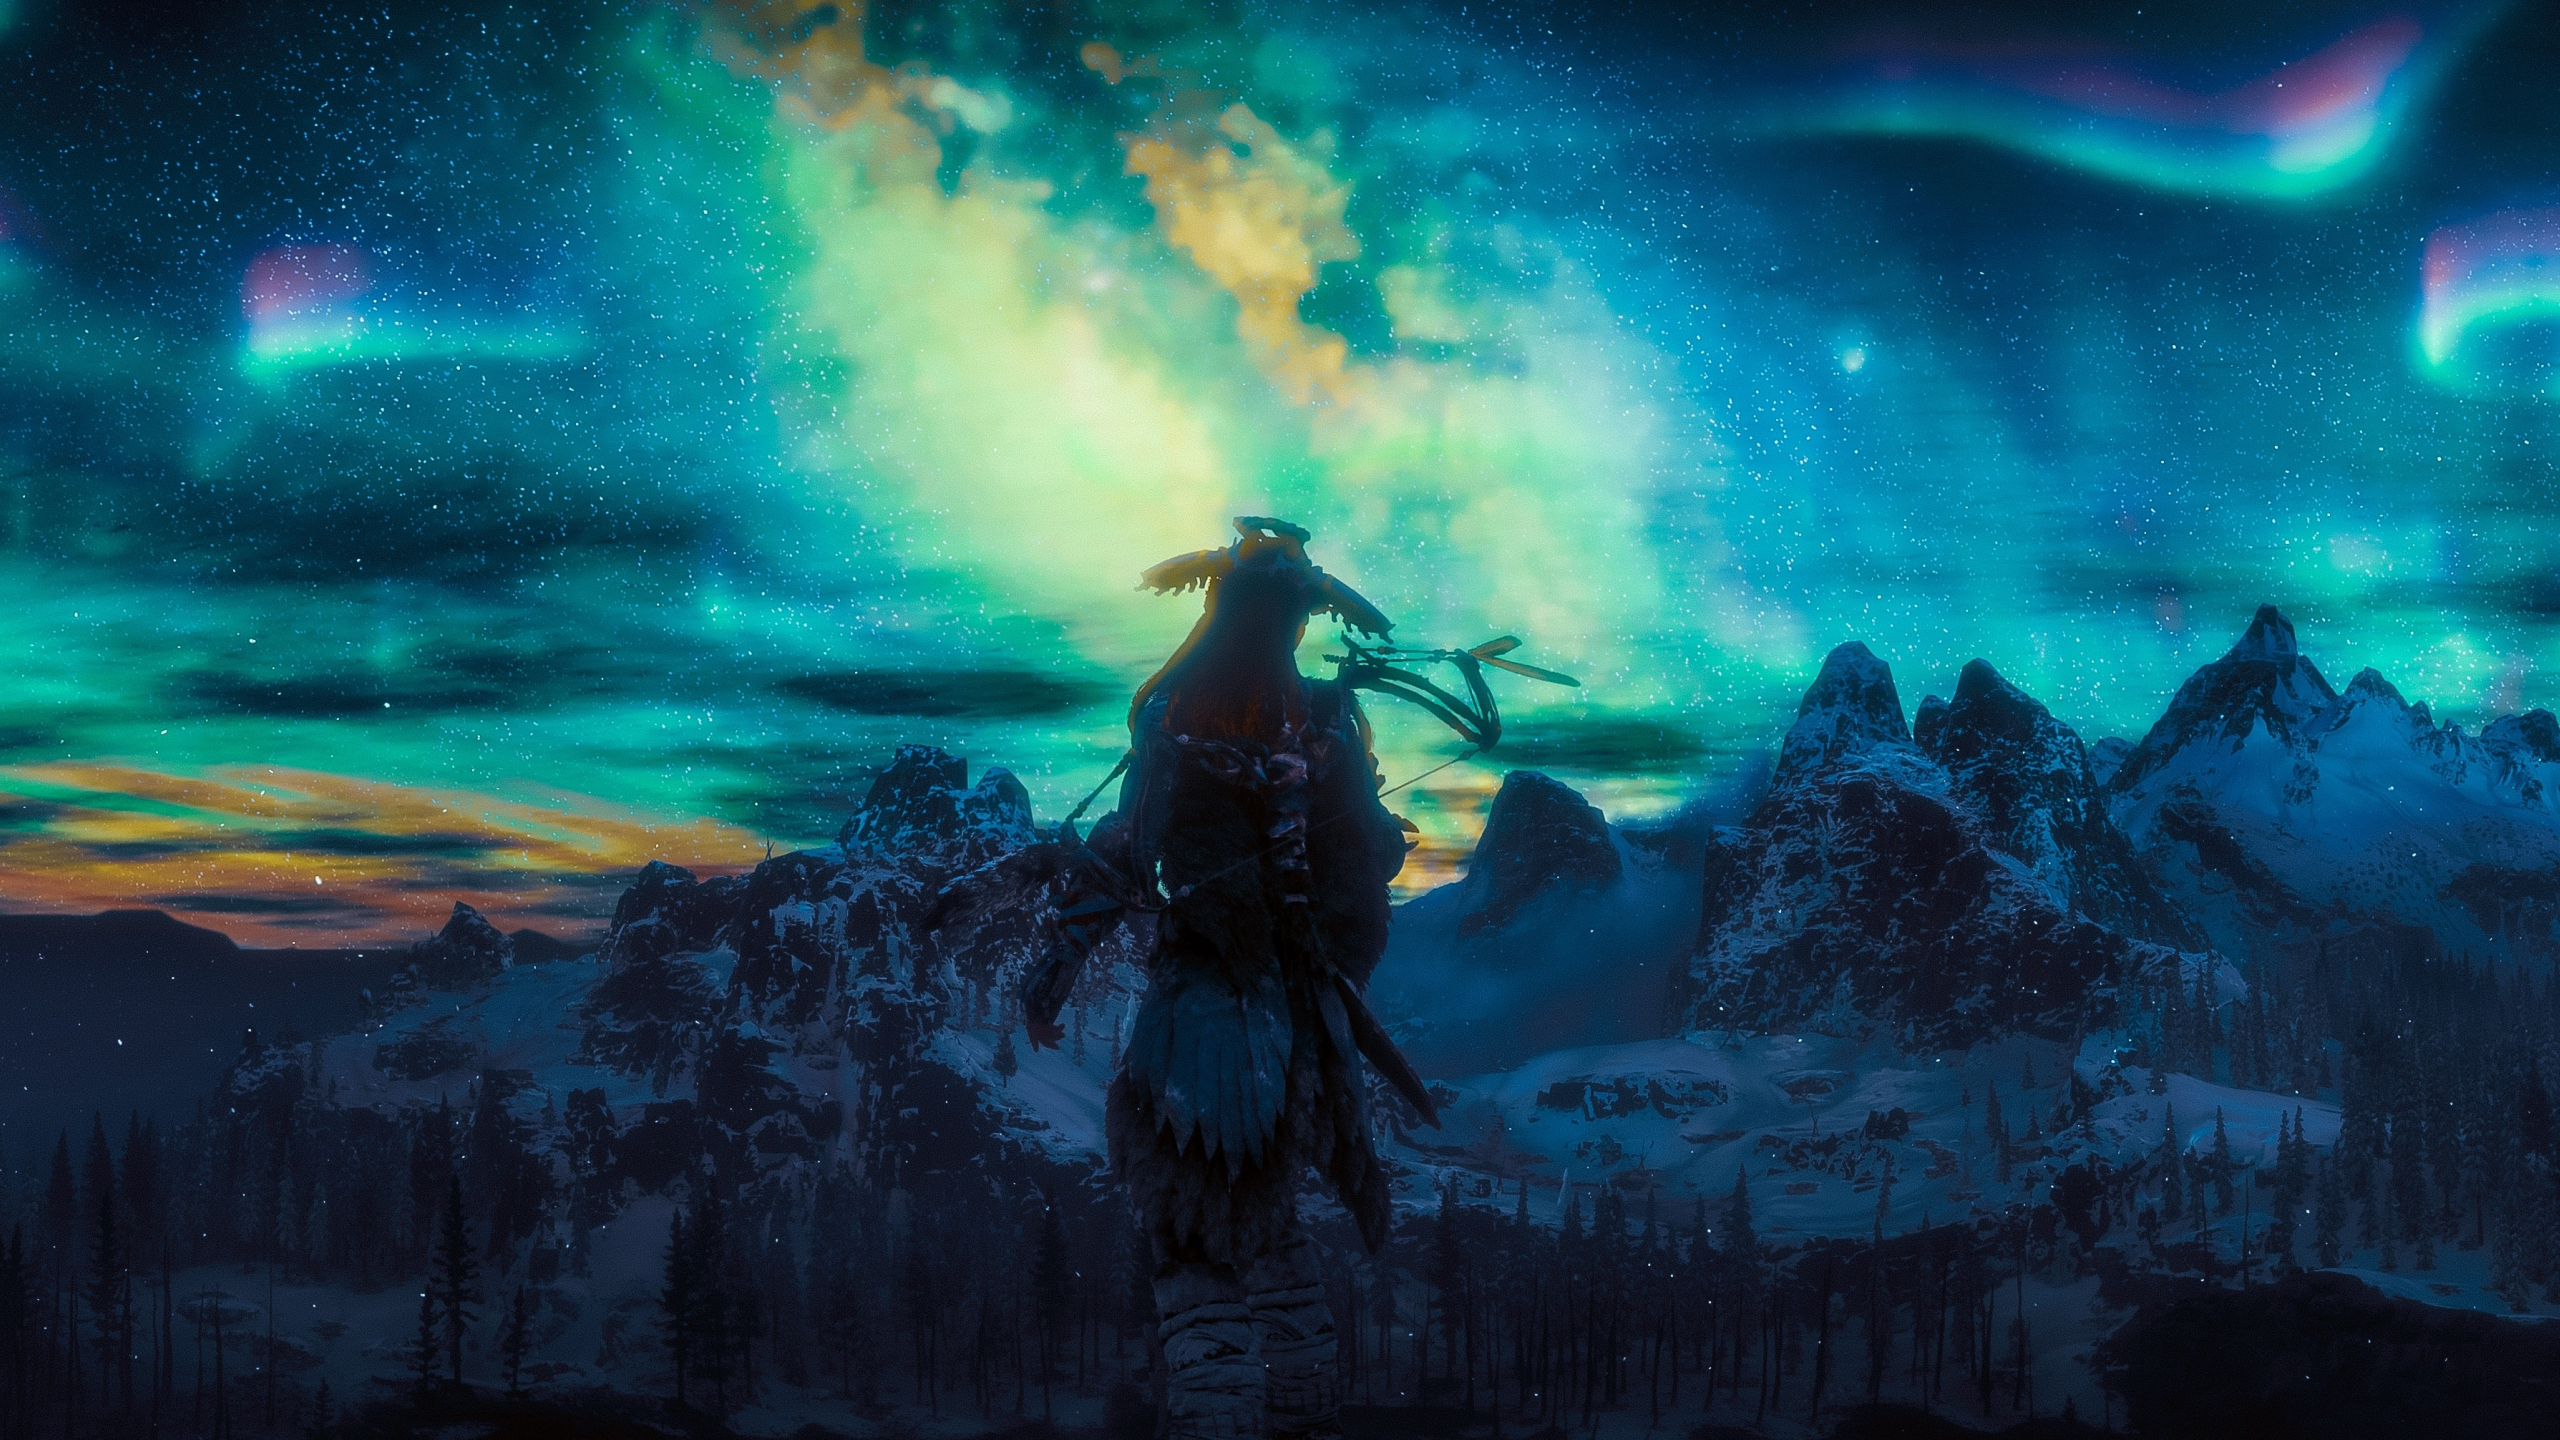 Download 2560x1440 Wallpaper Northern Lights Aloy Video